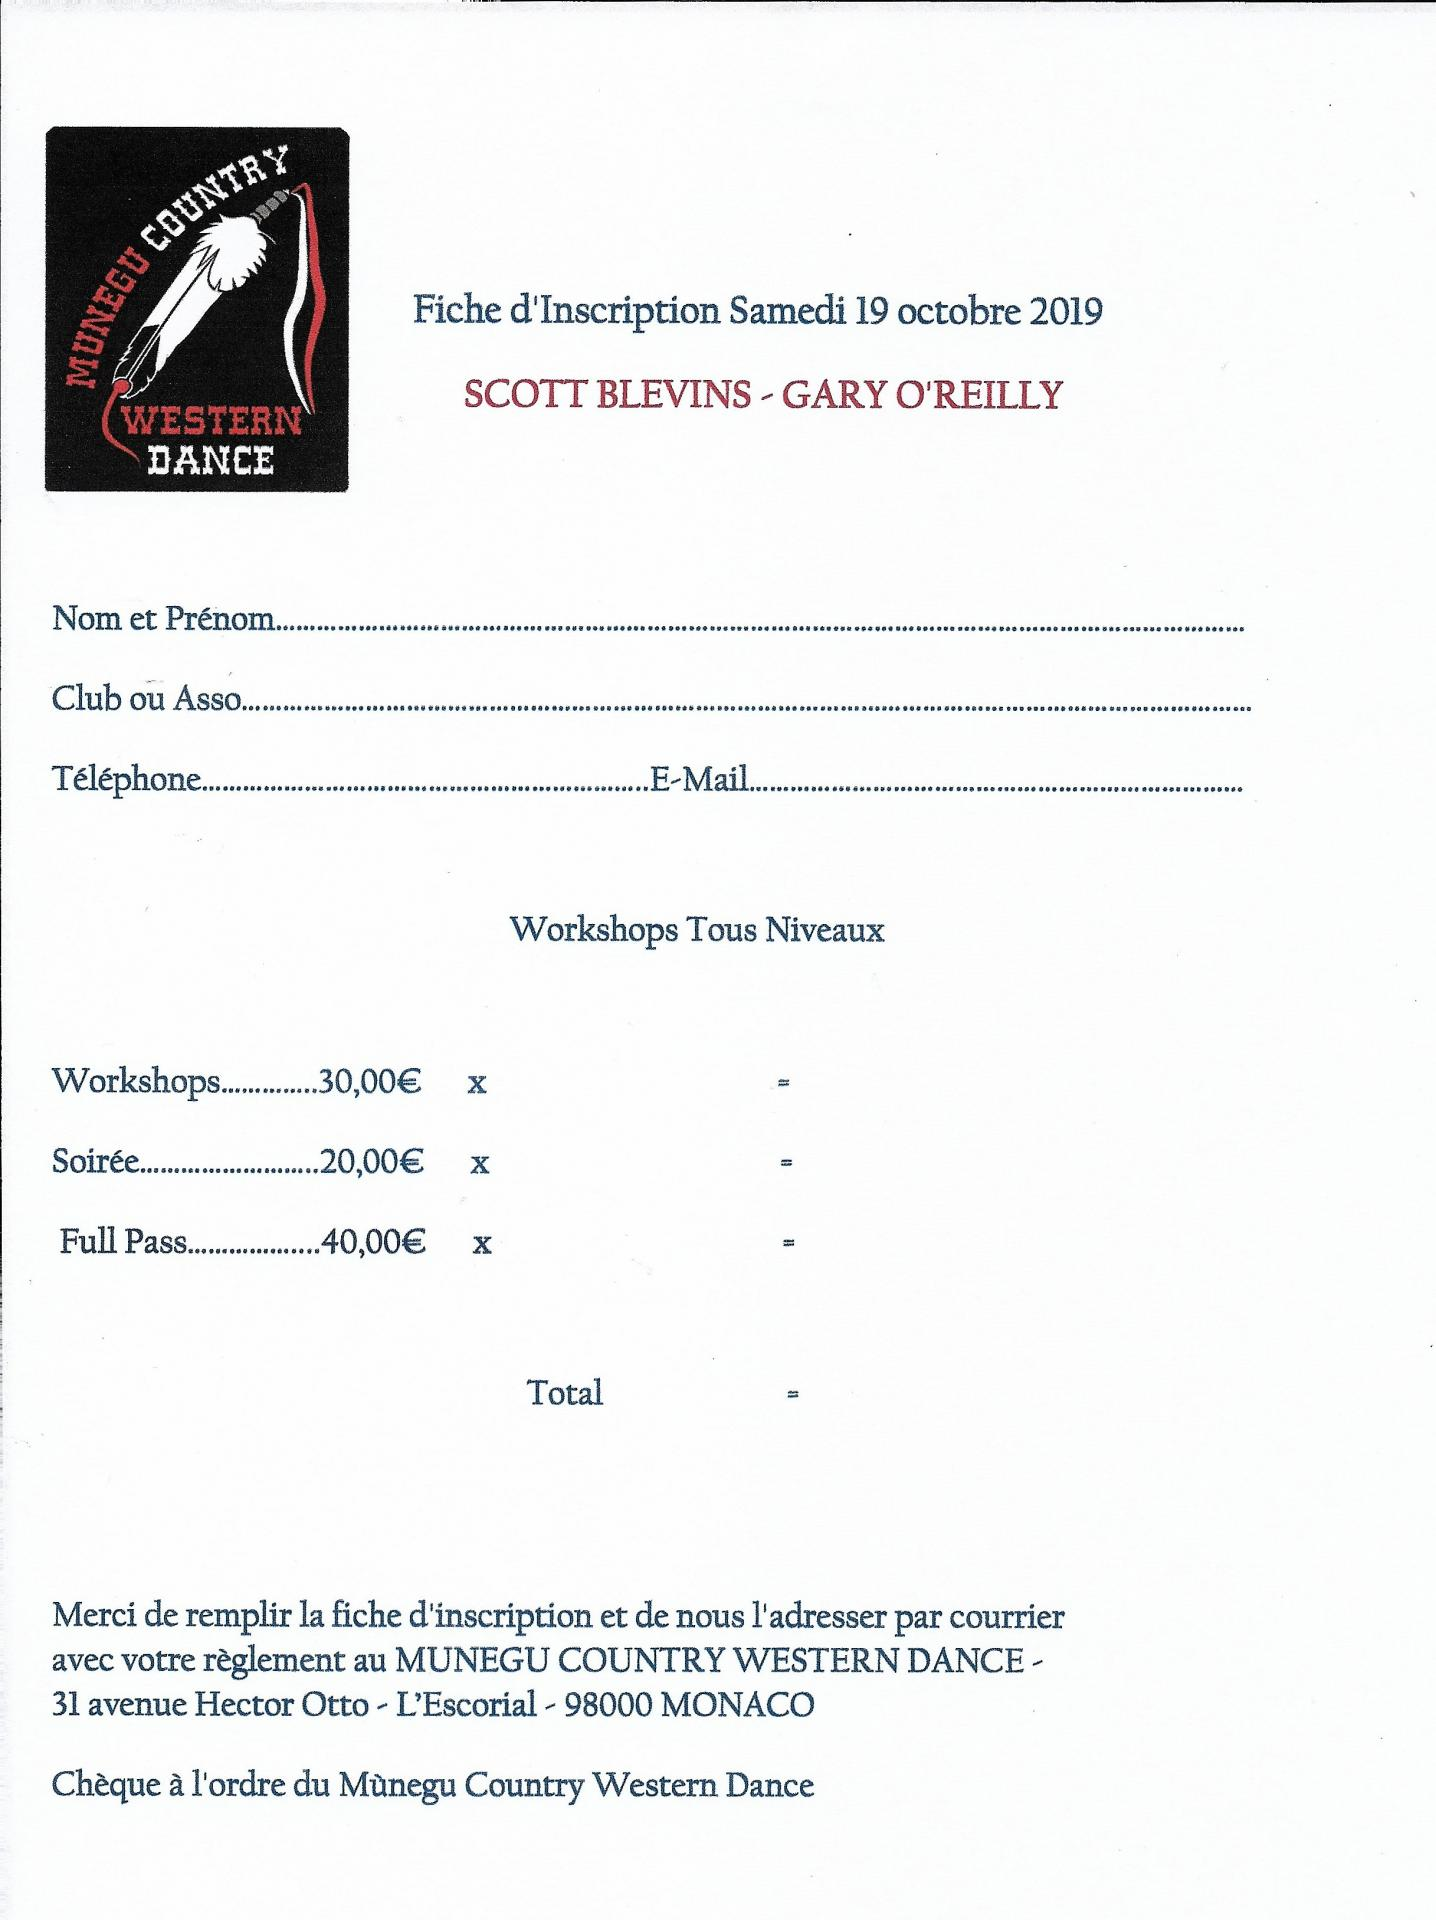 Fiche inscription event 2019